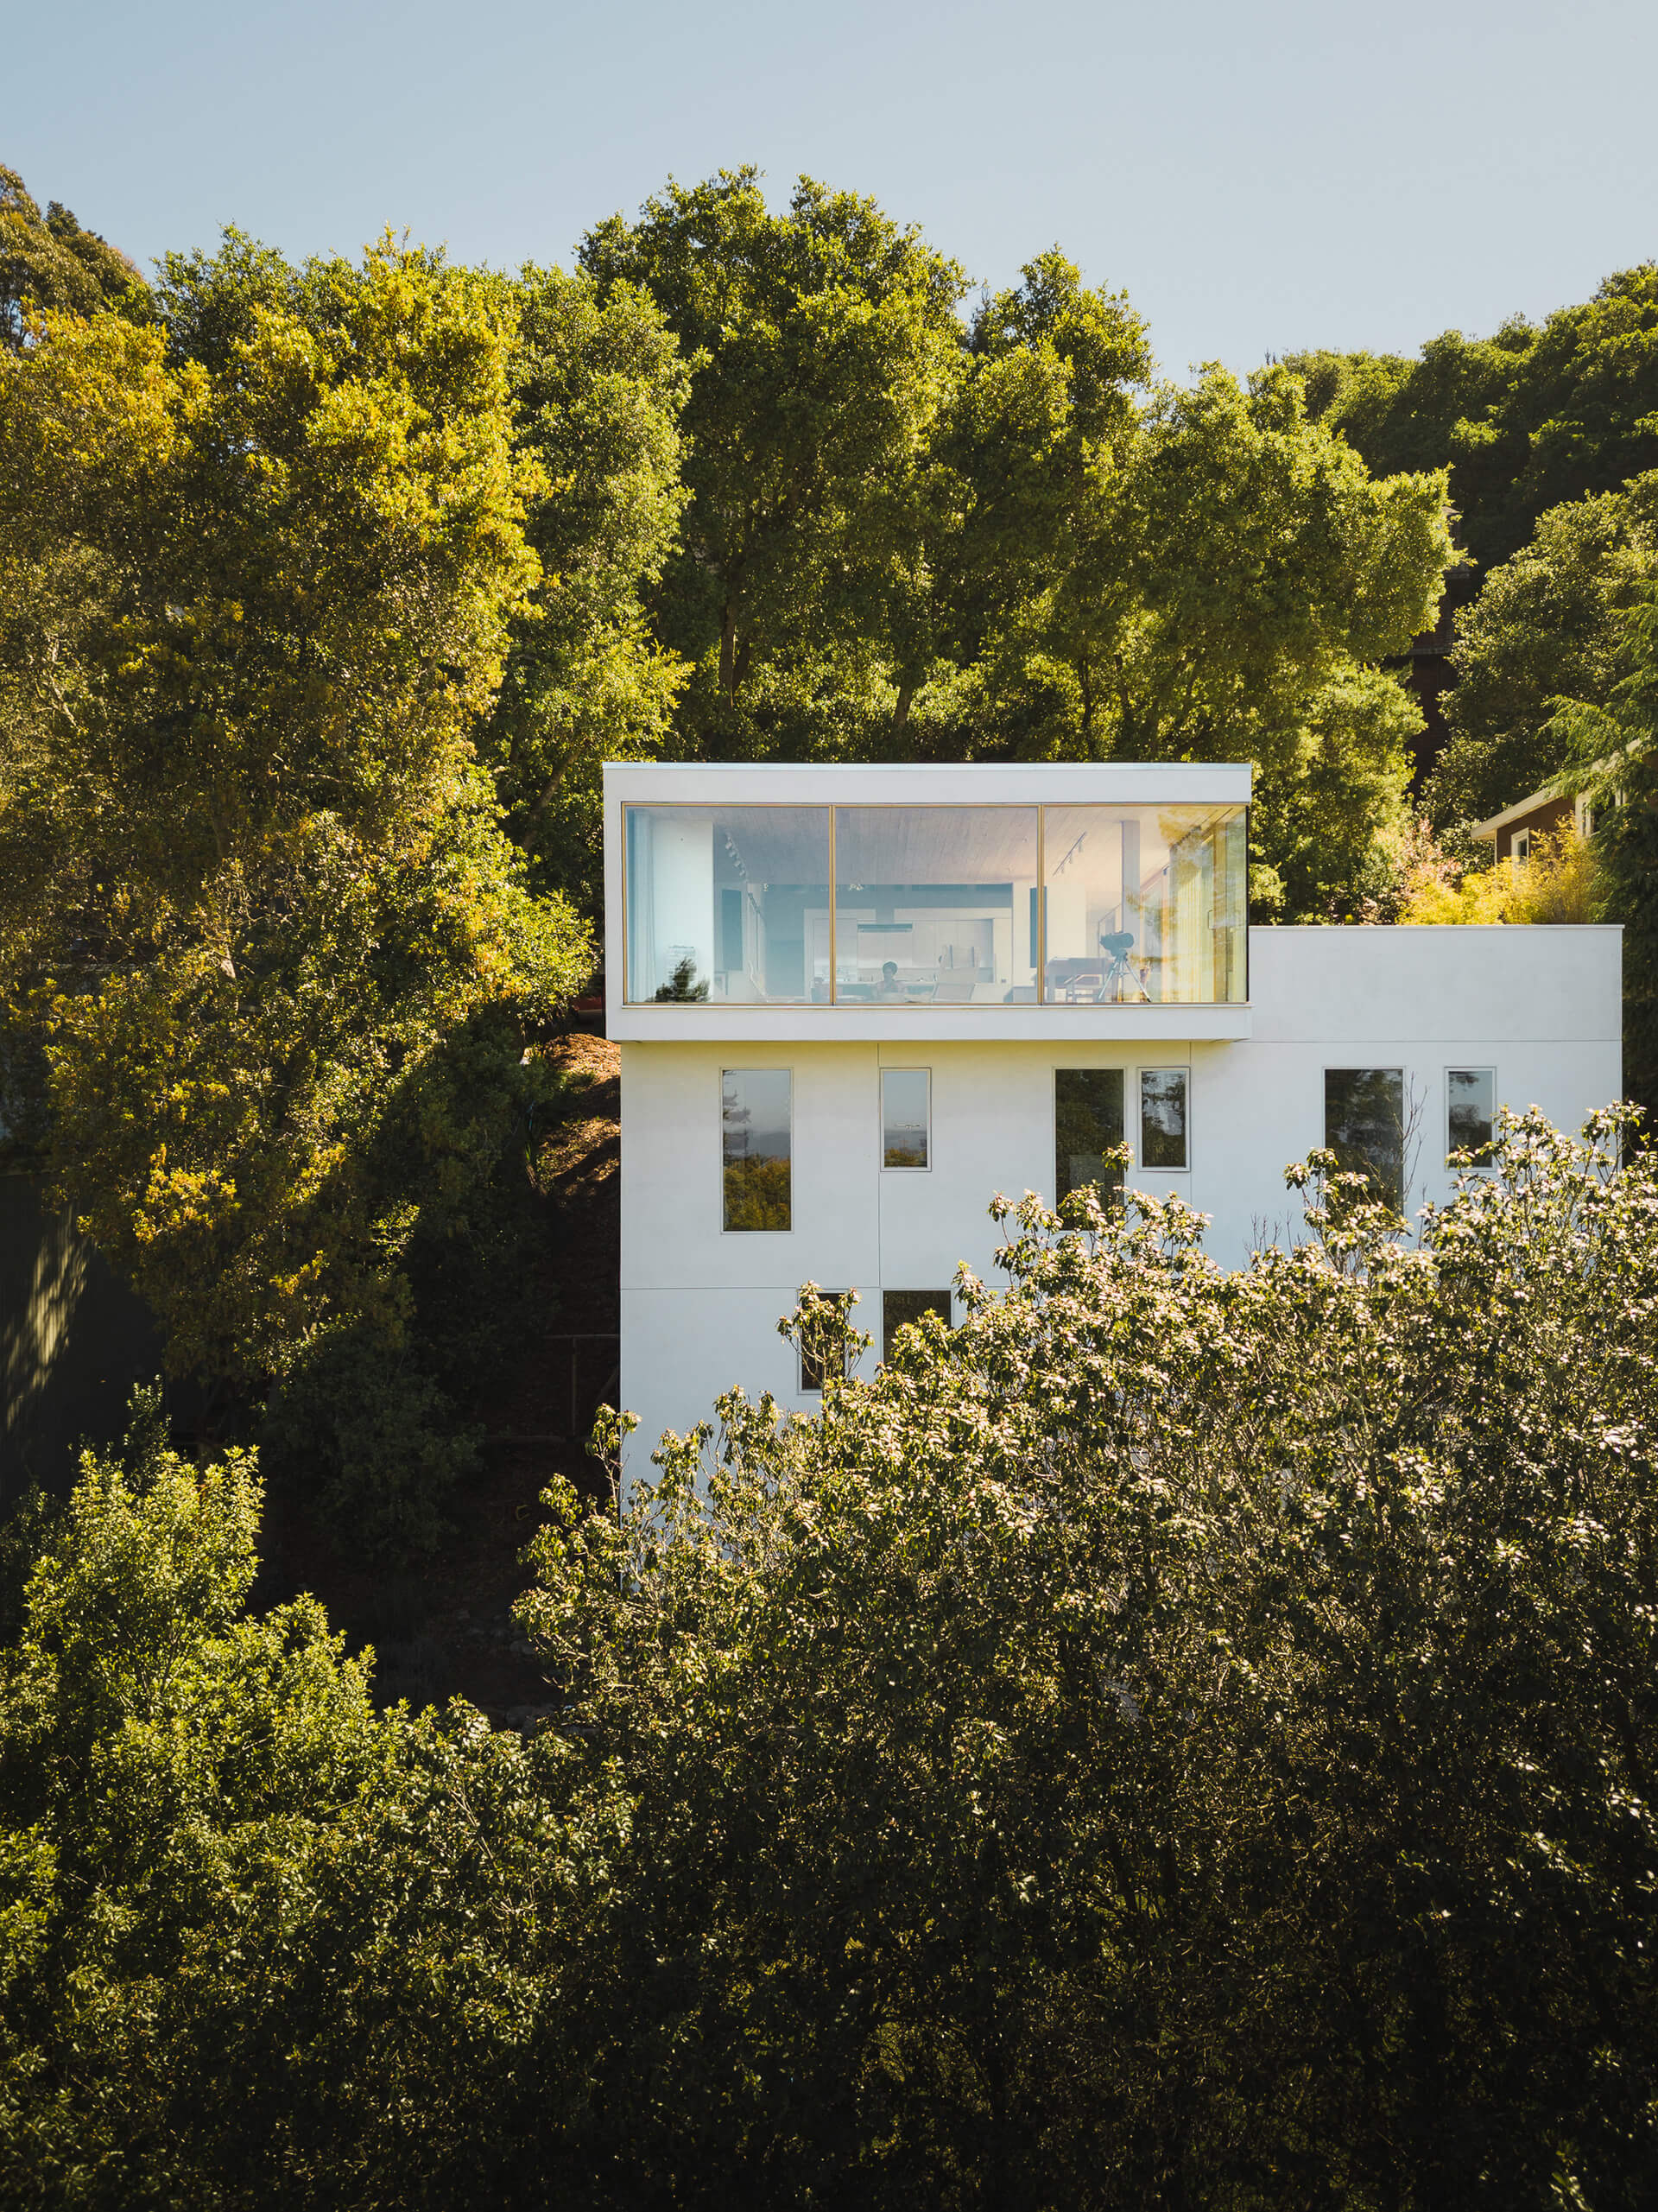 House of Light sits nestled among trees | House of Light designed by Rangr Studio | STIRworld